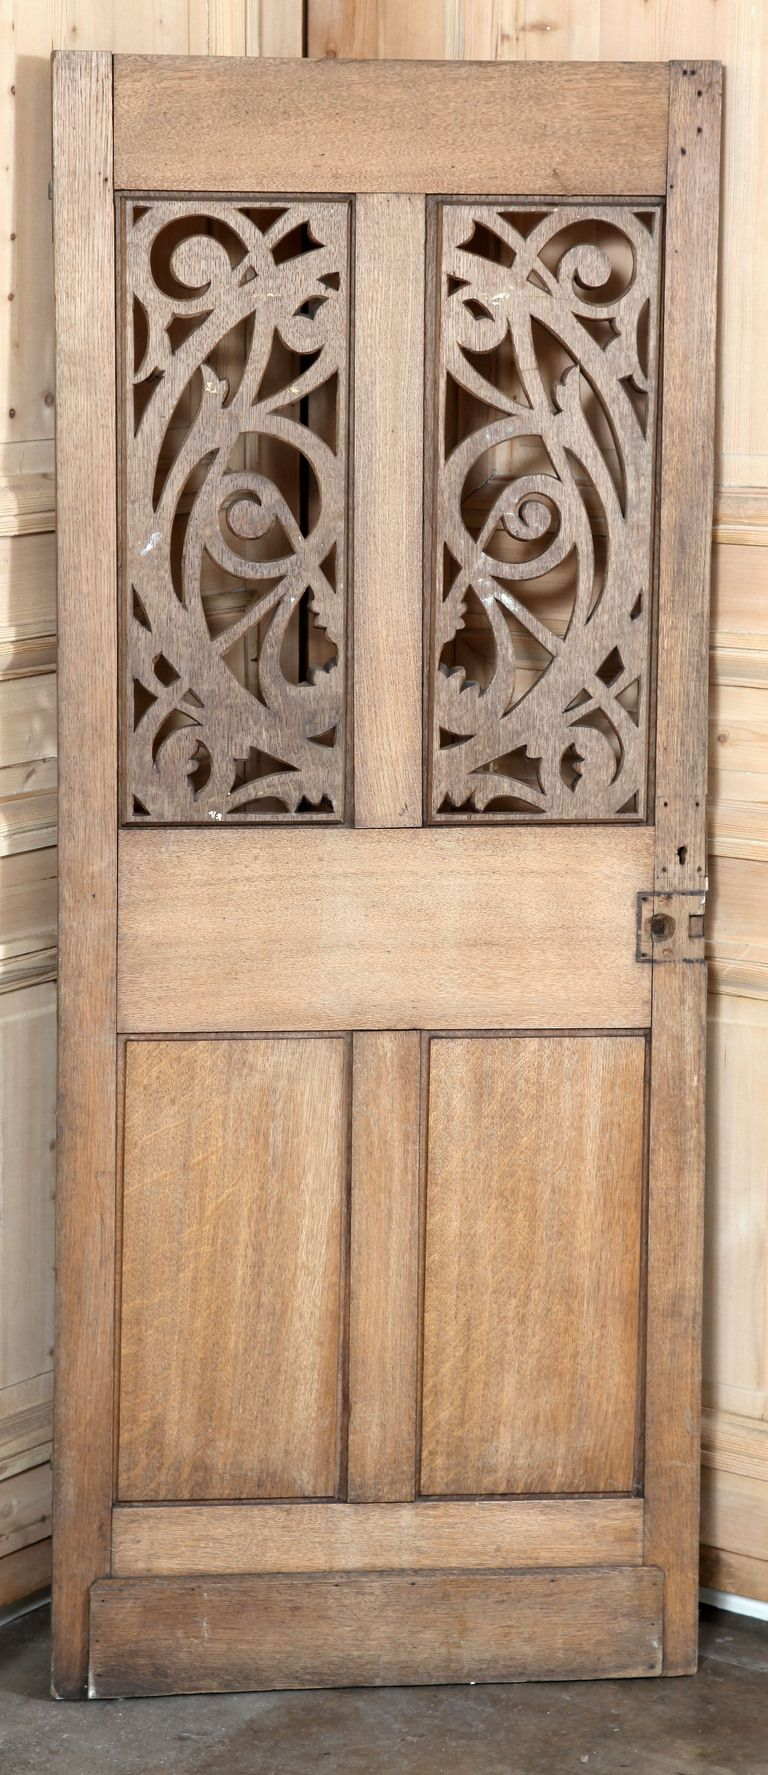 Antique French Gothic Pantry Door - Antique French Gothic Pantry Door Pantry, Doors And Decorative